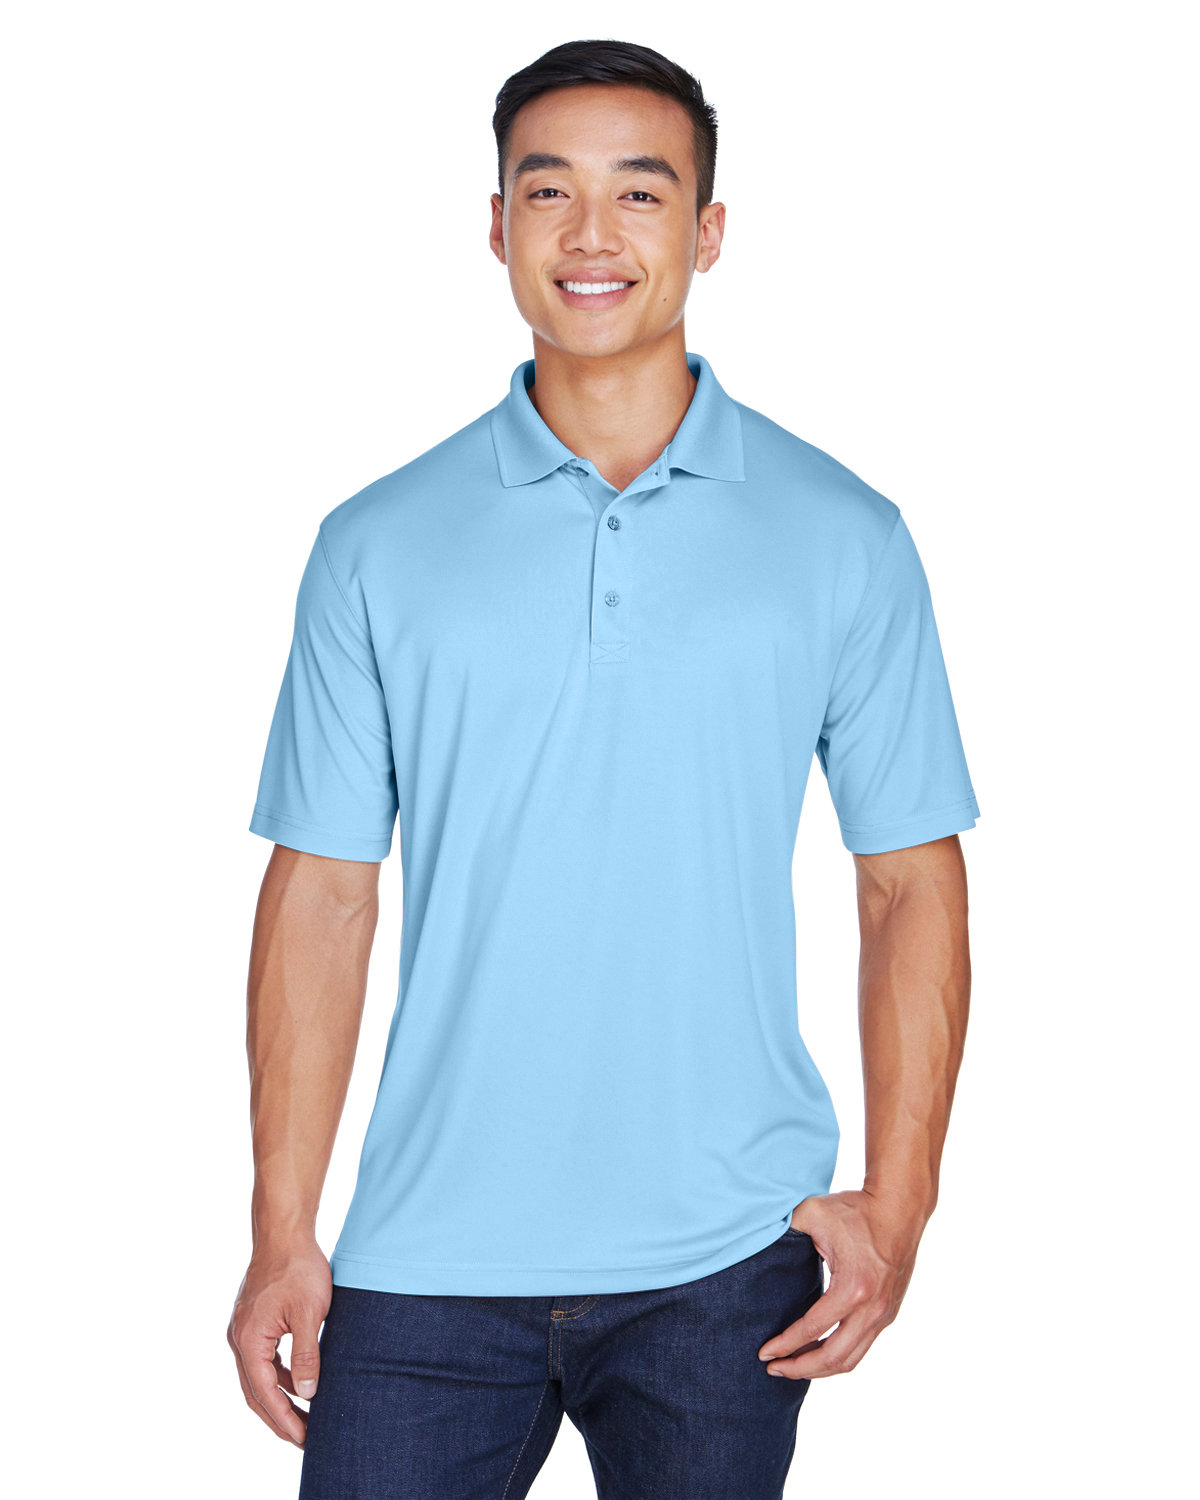 UltraClub Men's Cool & Dry Sport Polo COLUMBIA BLUE